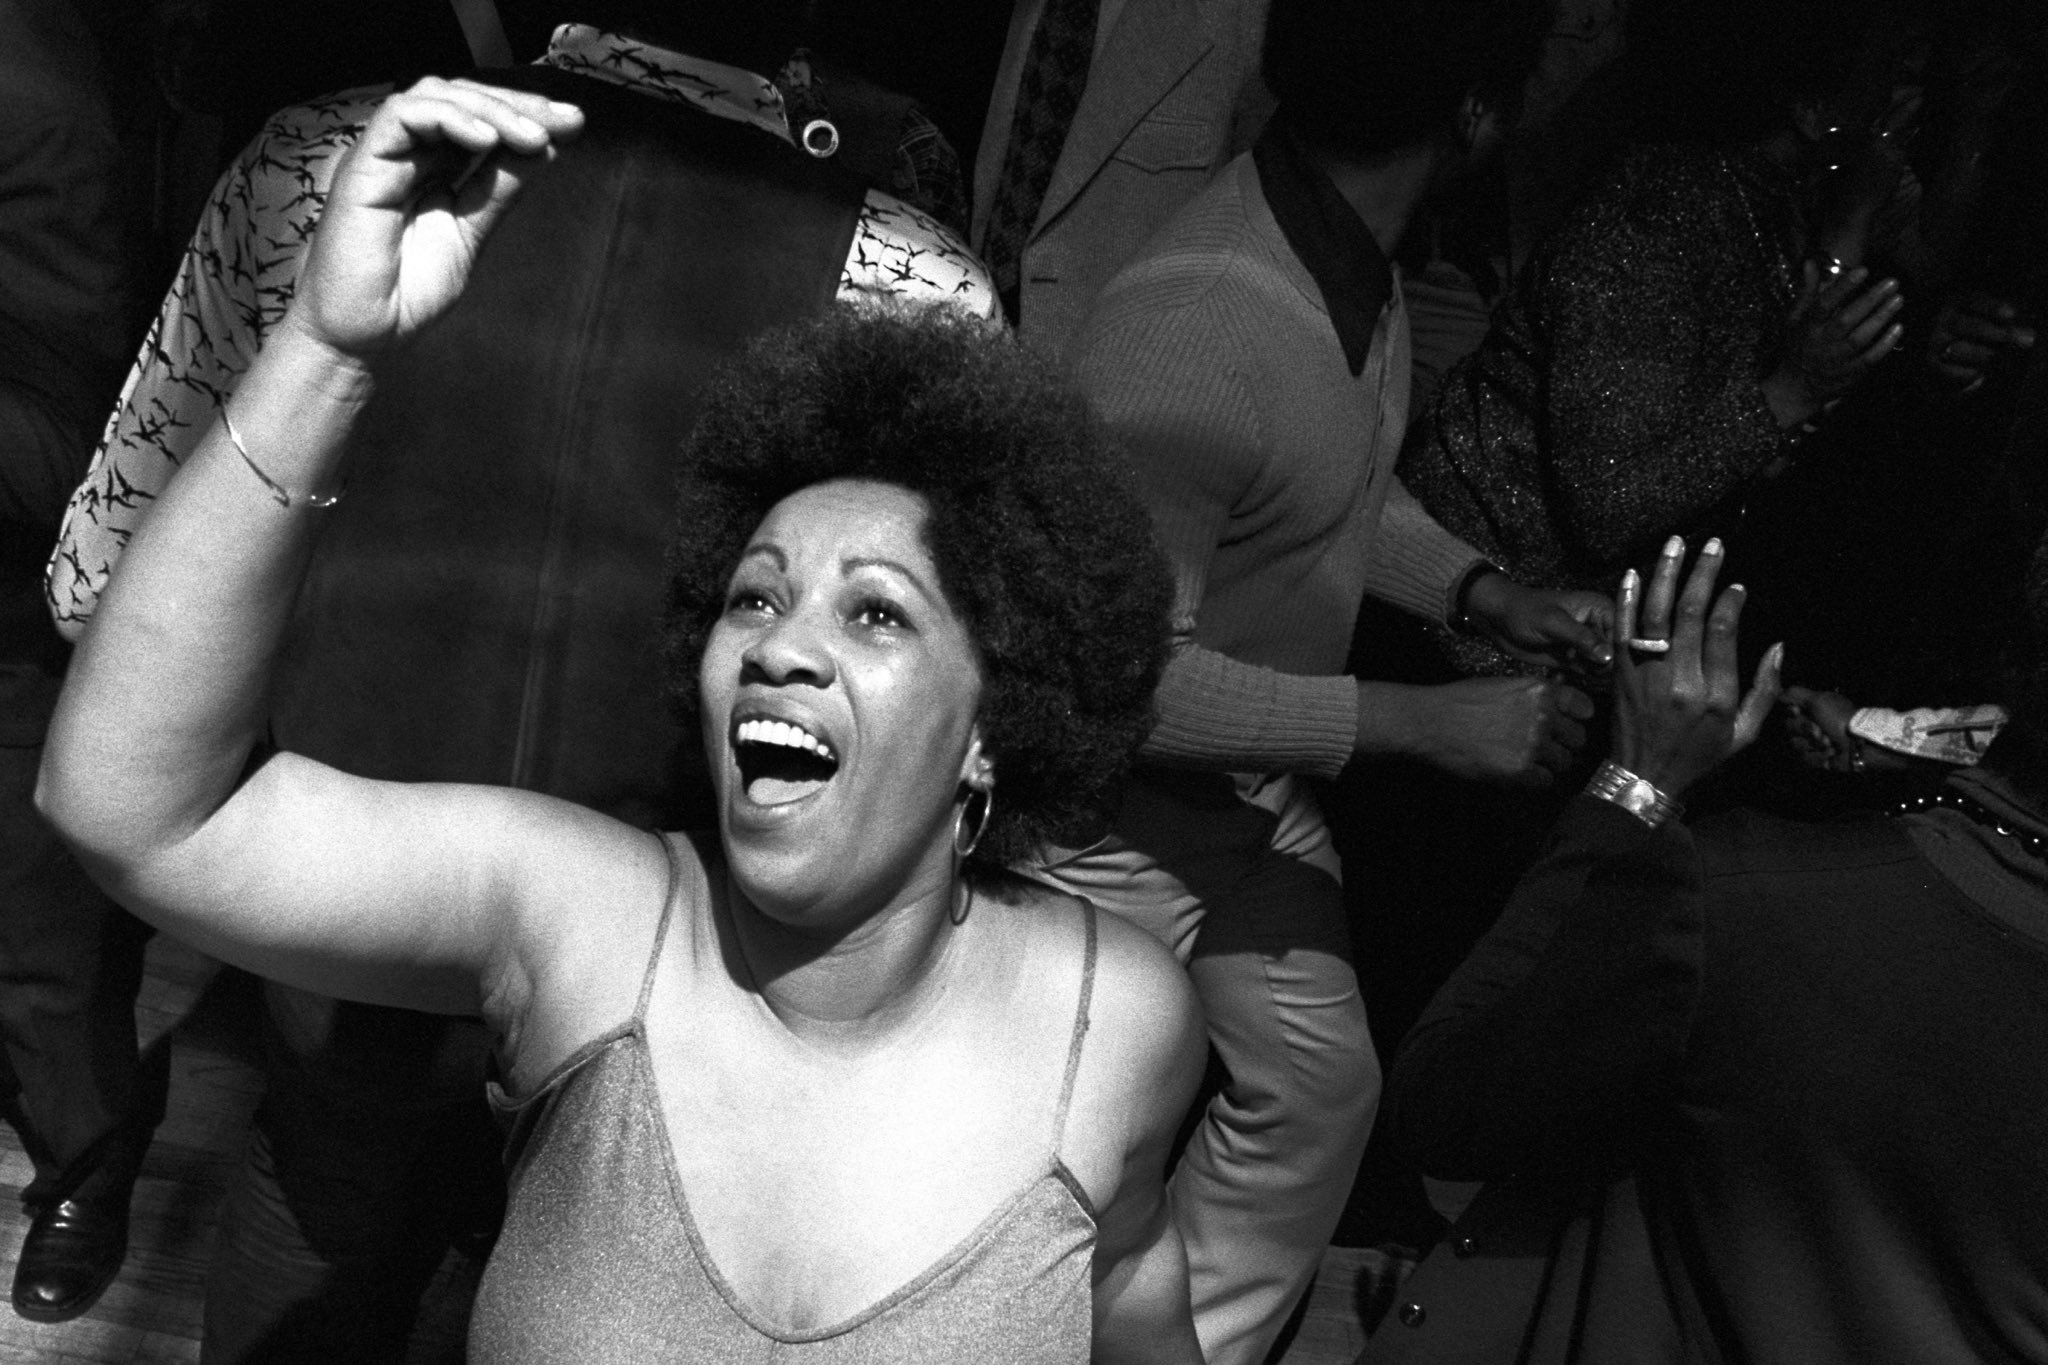 Toni getting her life and delivering us at a New York disco, 1974. ⁣⁣